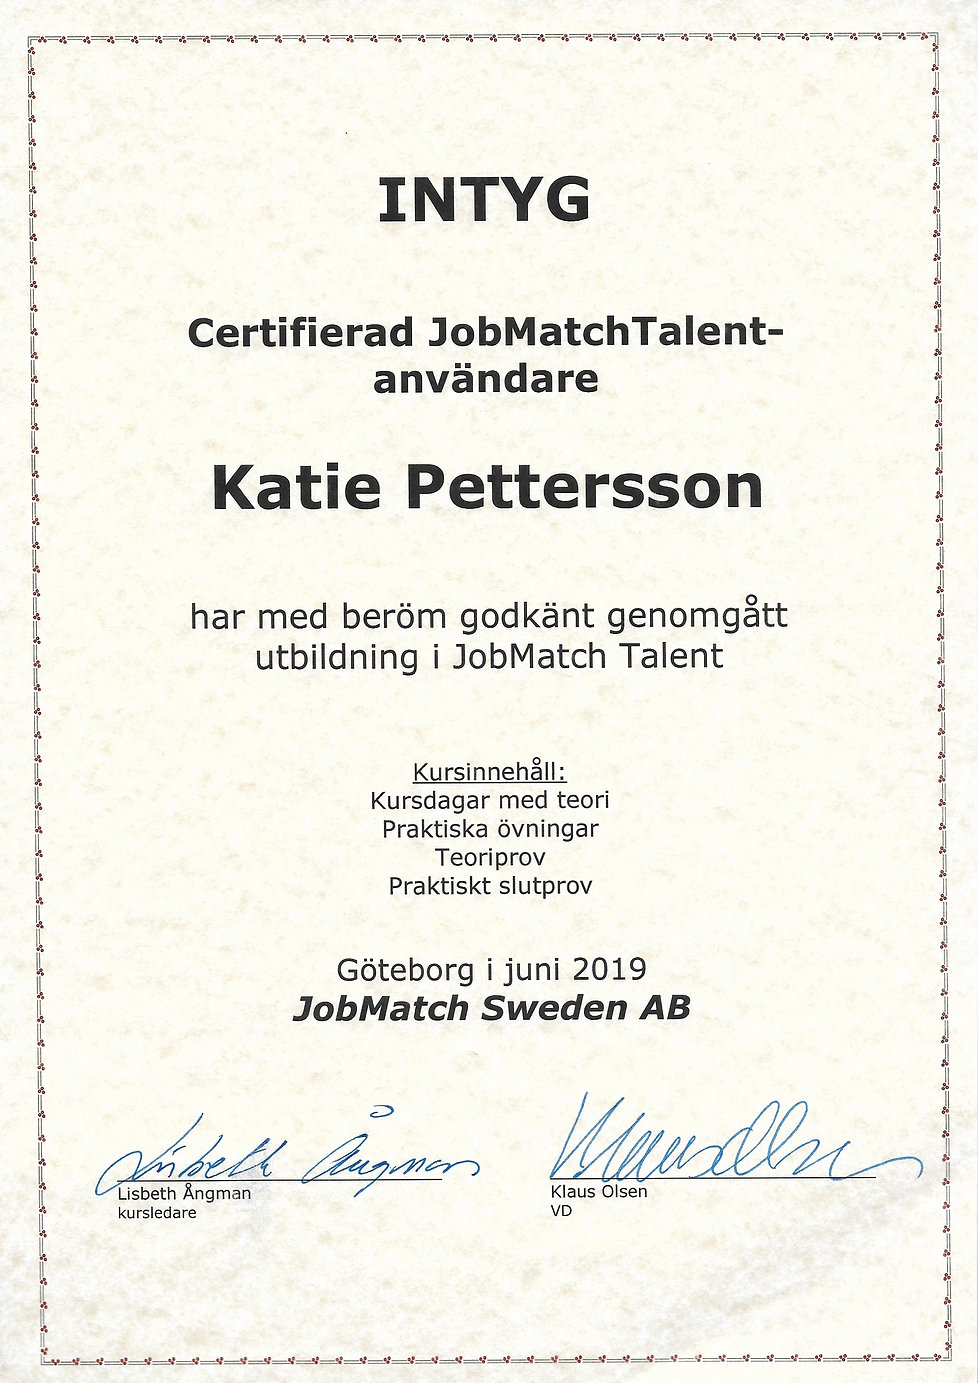 Certificate of Jobmatch Talent .jpg